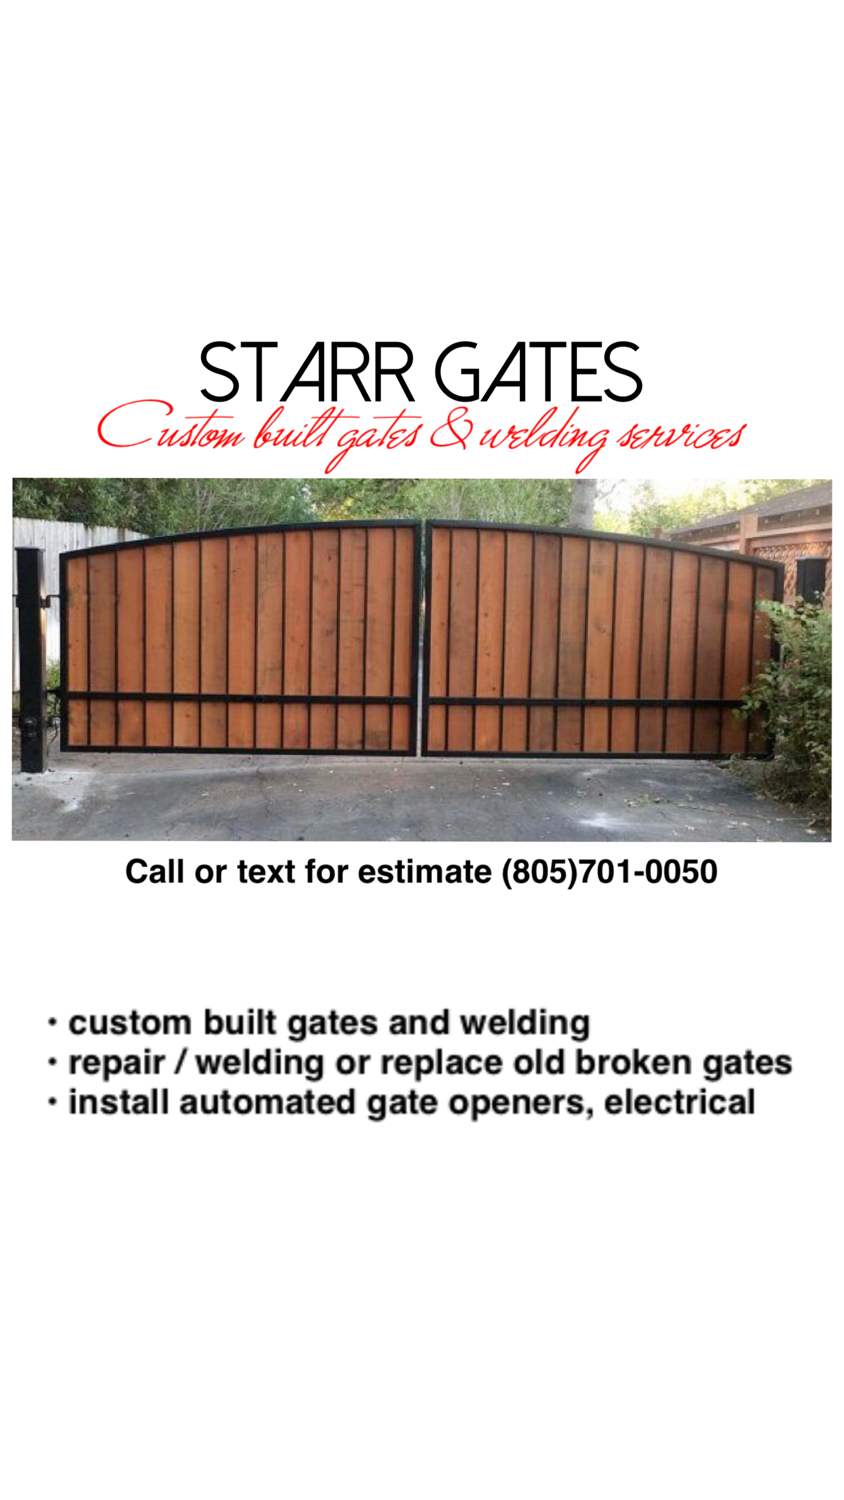 Starr Gates Custom Built Gates, Fencing and Welding Repair Work